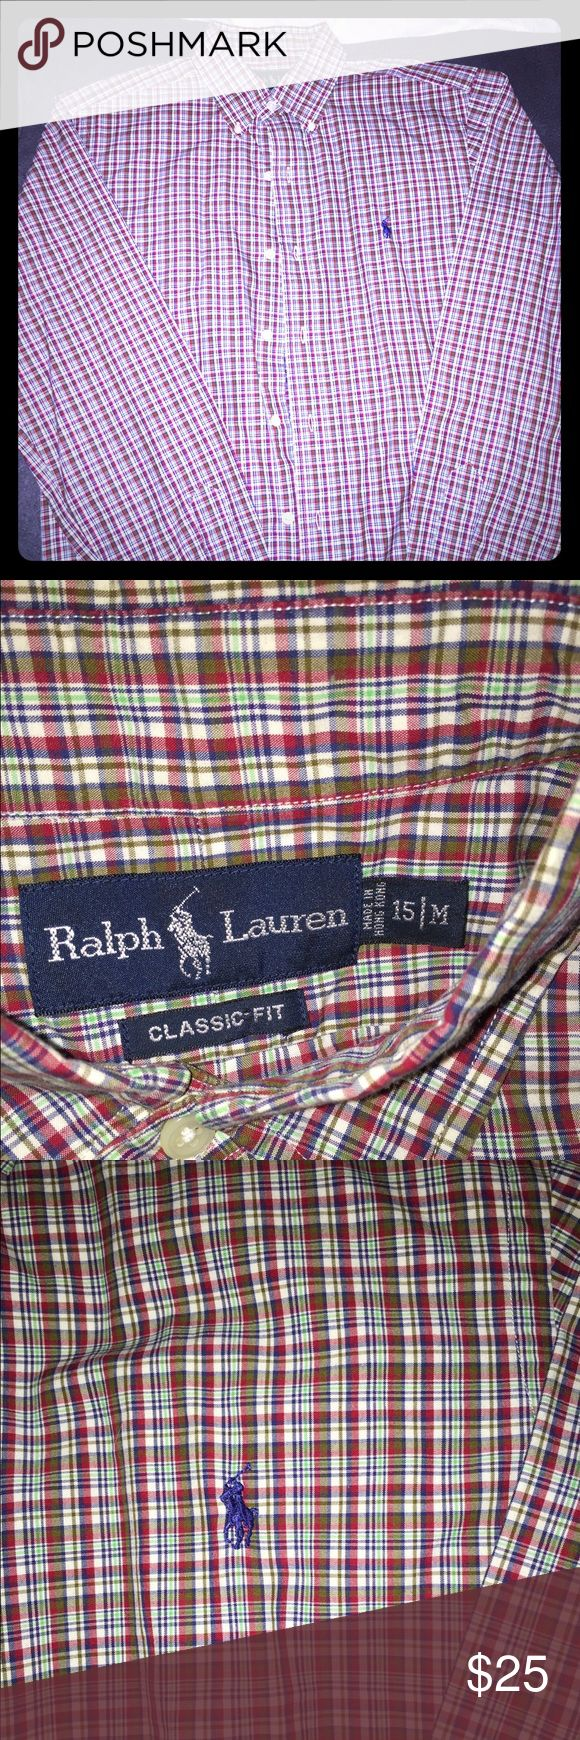 Men's Ralph Lauren Classic Fit Button Down - M You are looking at a EUC Men's Ralph Lauren plaid button down...this is a classic fit (meaning looser not tailored/slim fitting), in a size Medium. This is an awesome shirt and great for summer or winter time wearing! No stains, tears, etc. If you have any questions please feel free to ask! Thanks! 😎 Ralph Lauren Shirts Casual Button Down Shirts